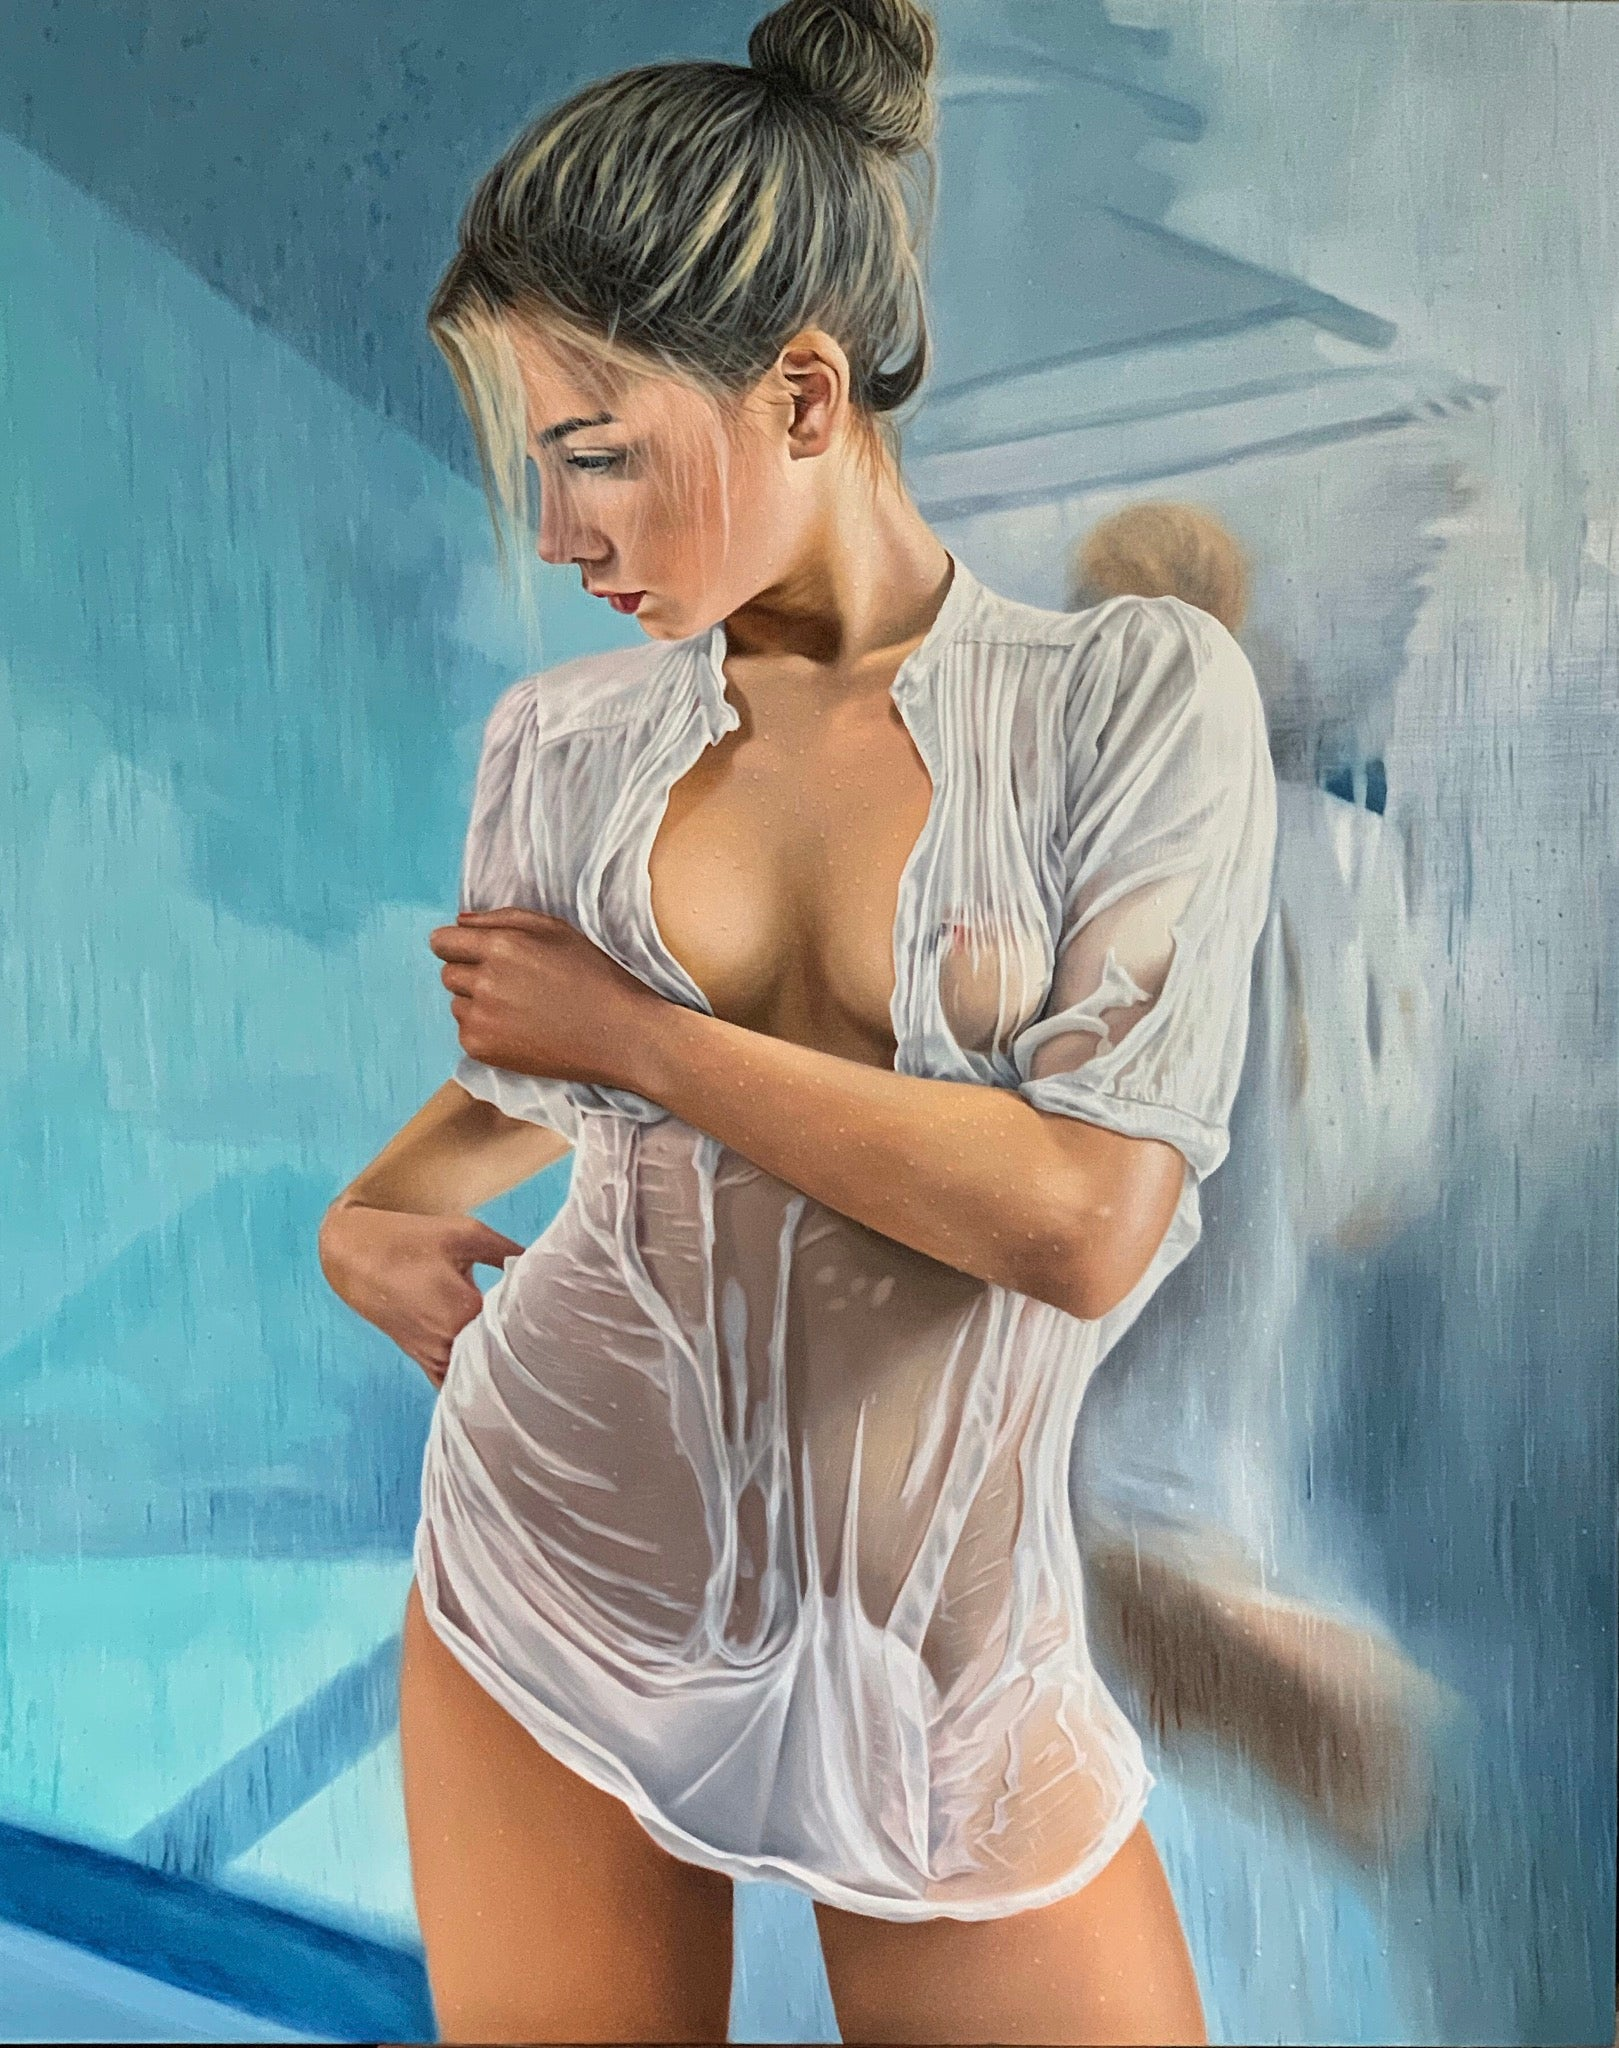 """Mirror"" Oil on canvas 59x47 inch by Dmitriy Krestniy"